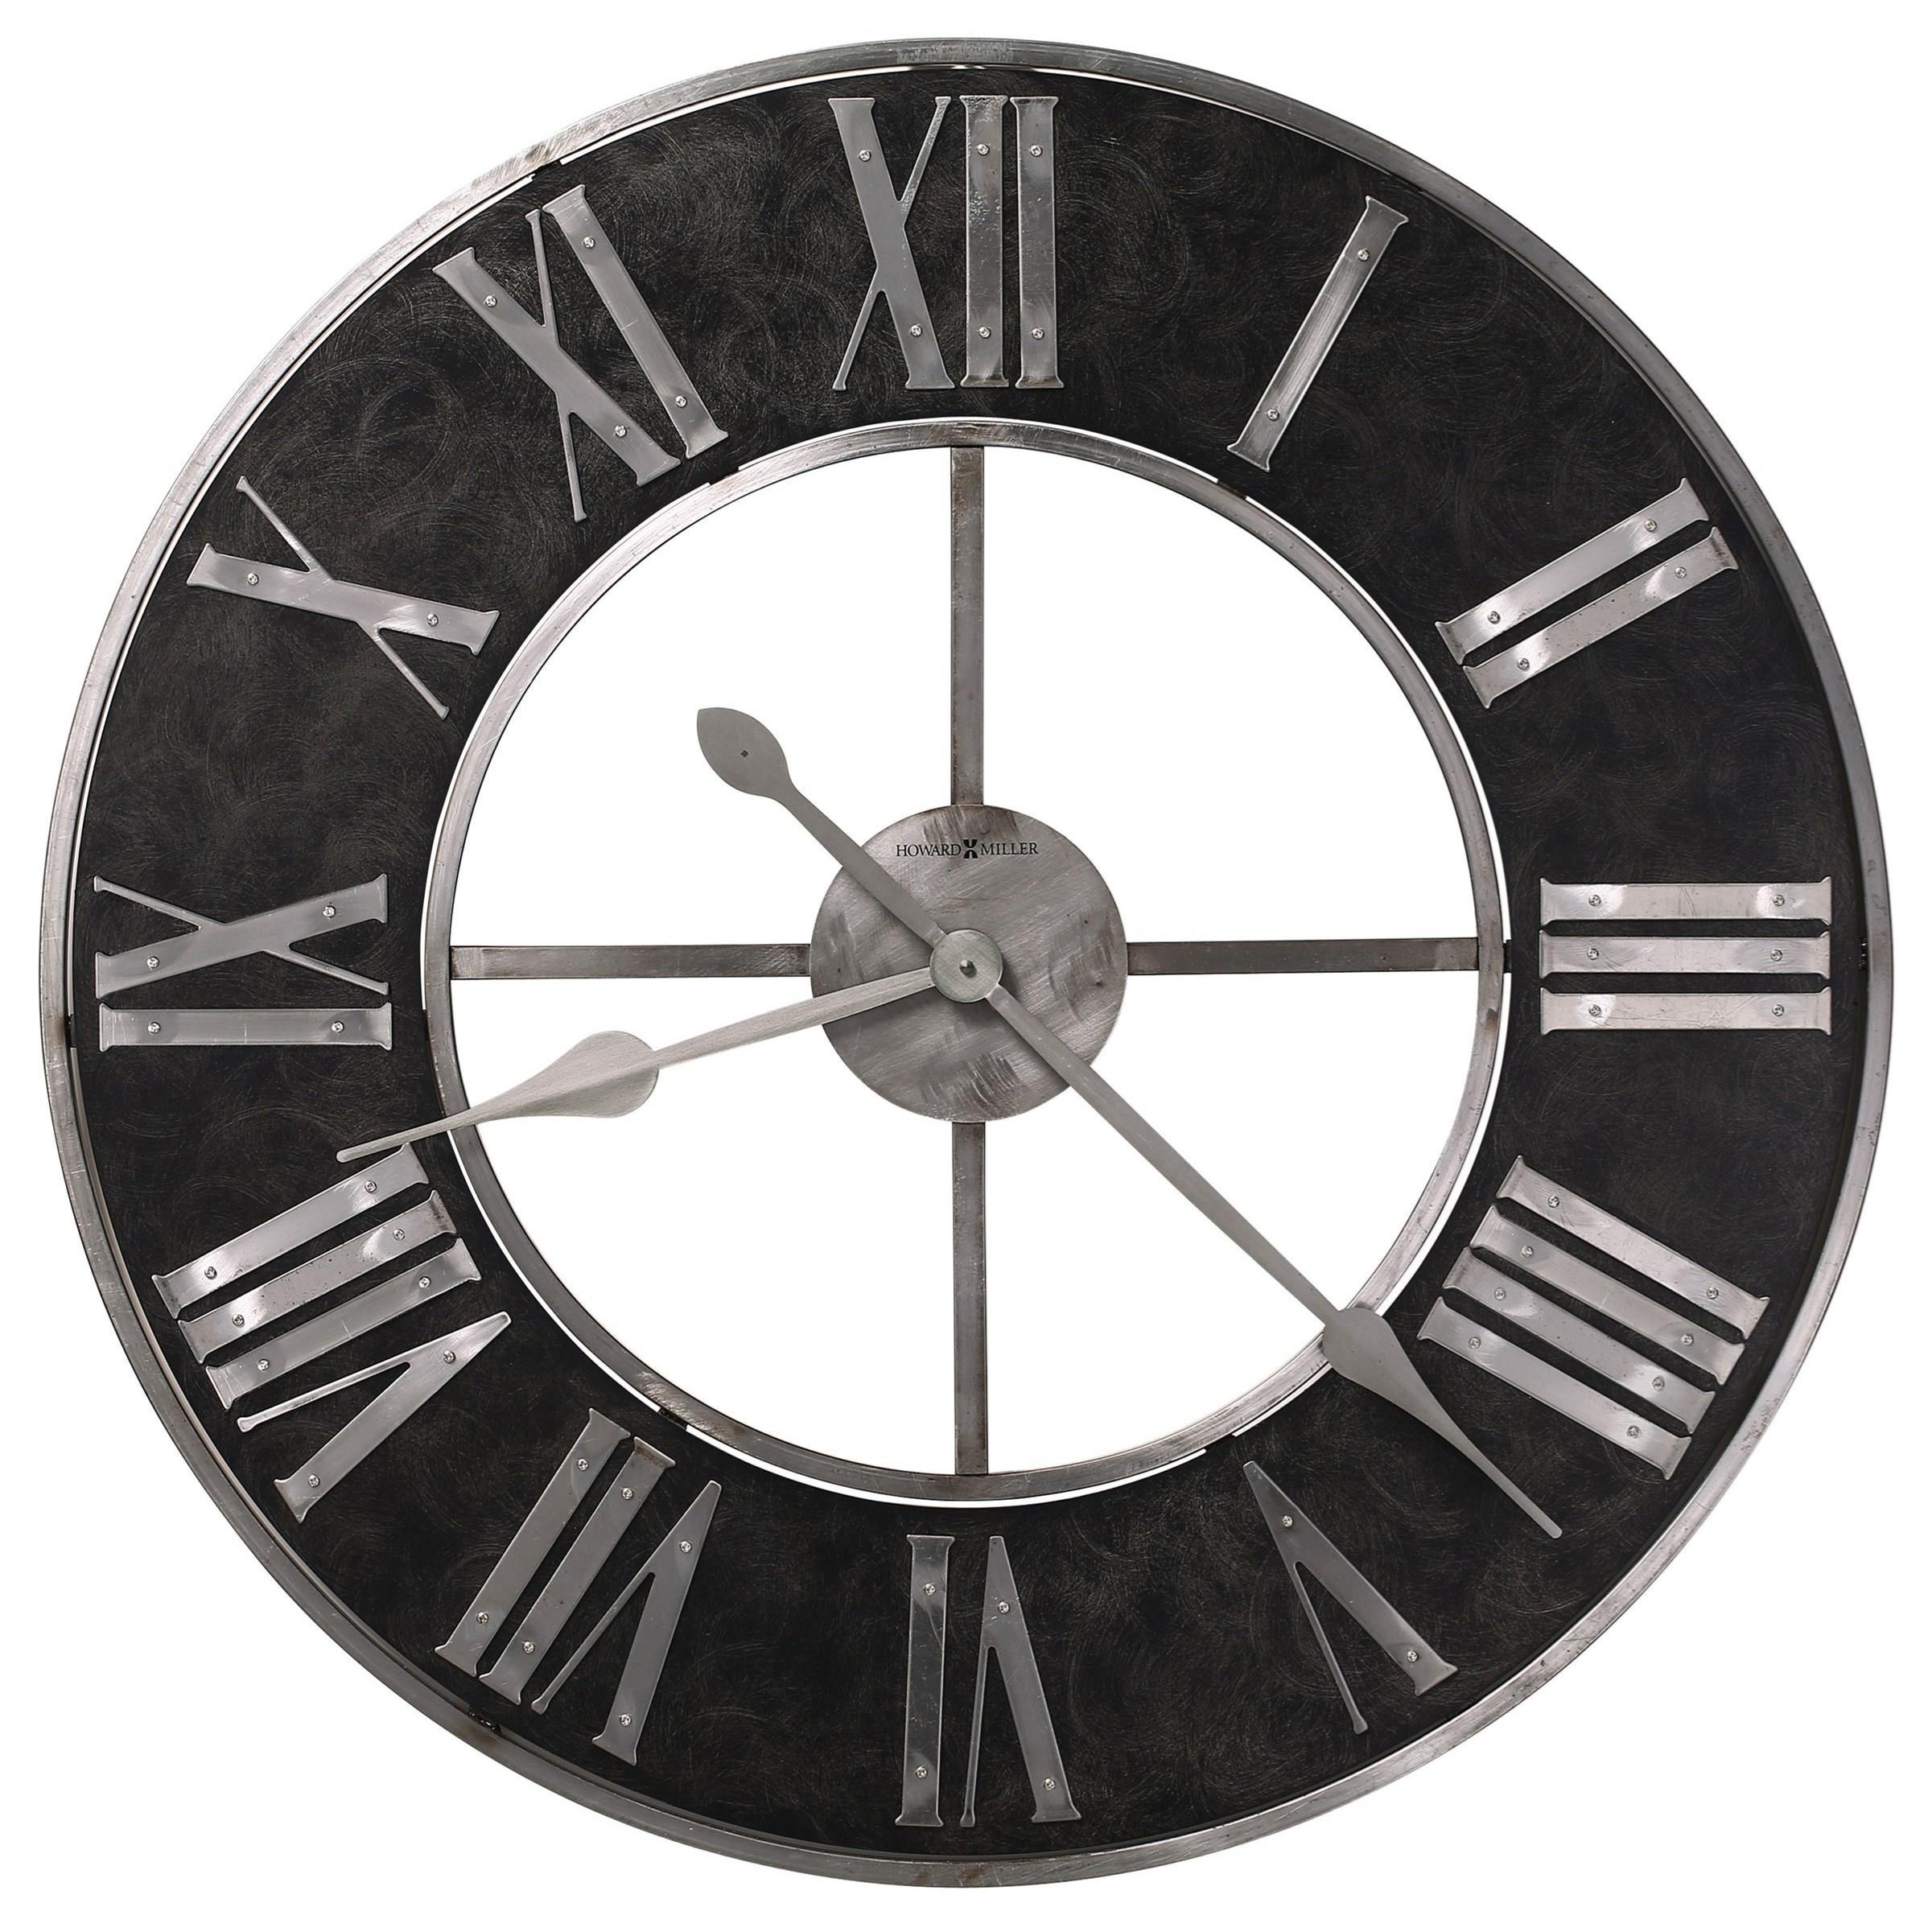 Wall Clocks Dearborn Wall Clock by Howard Miller at Baer's Furniture